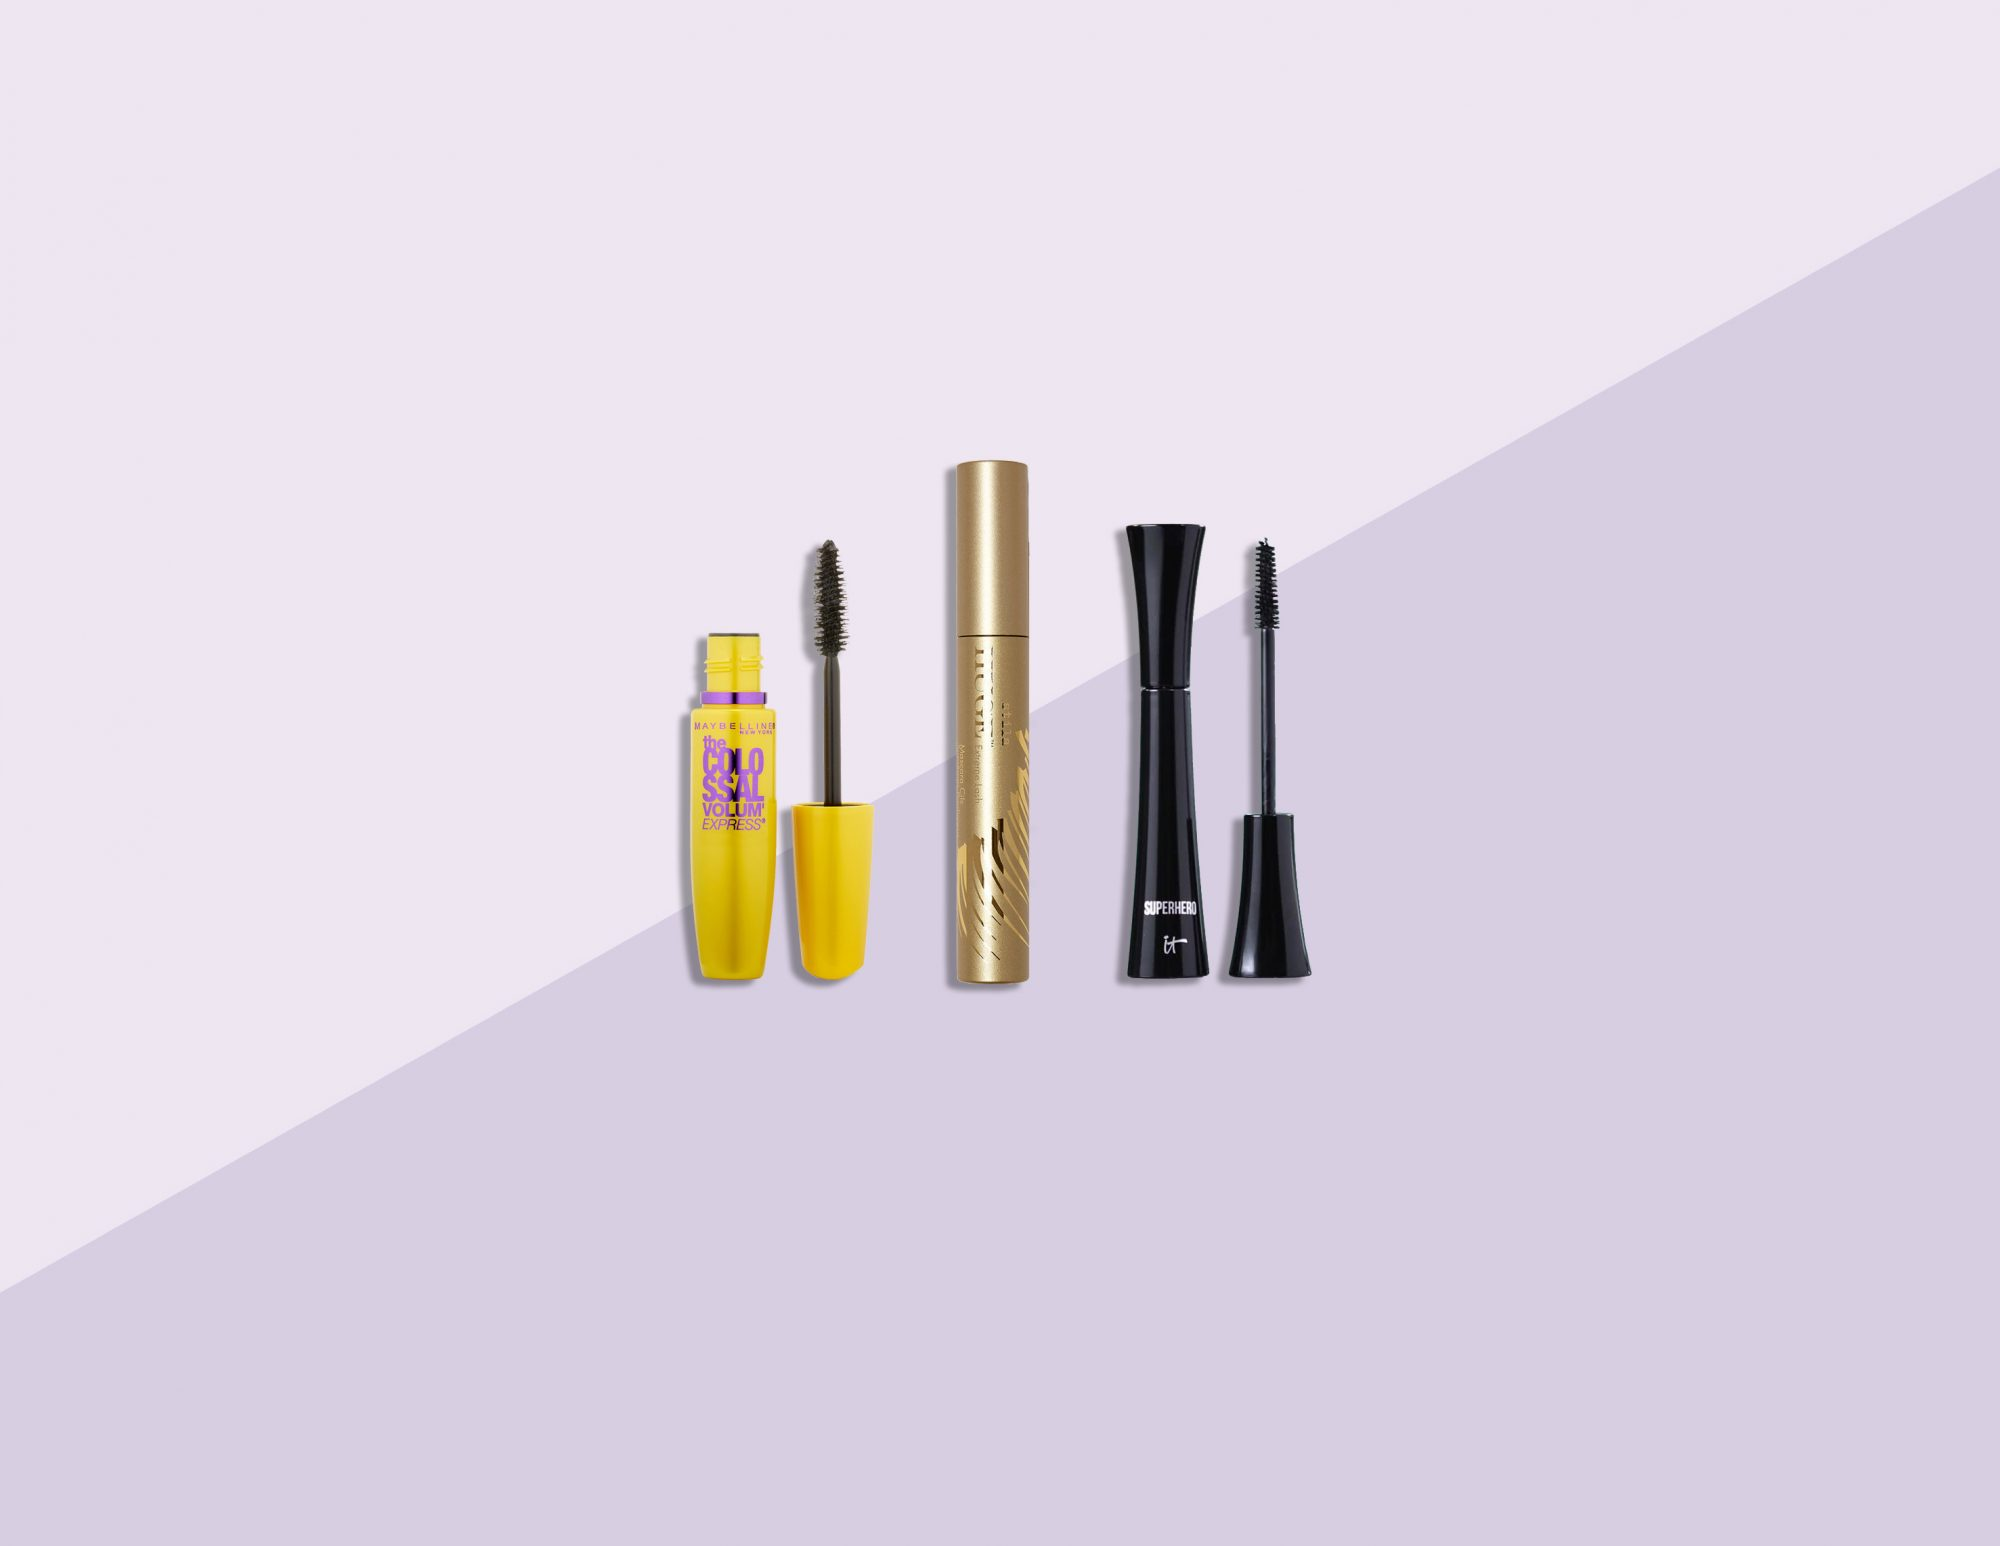 6 Mascaras That Are Better Than Falsies